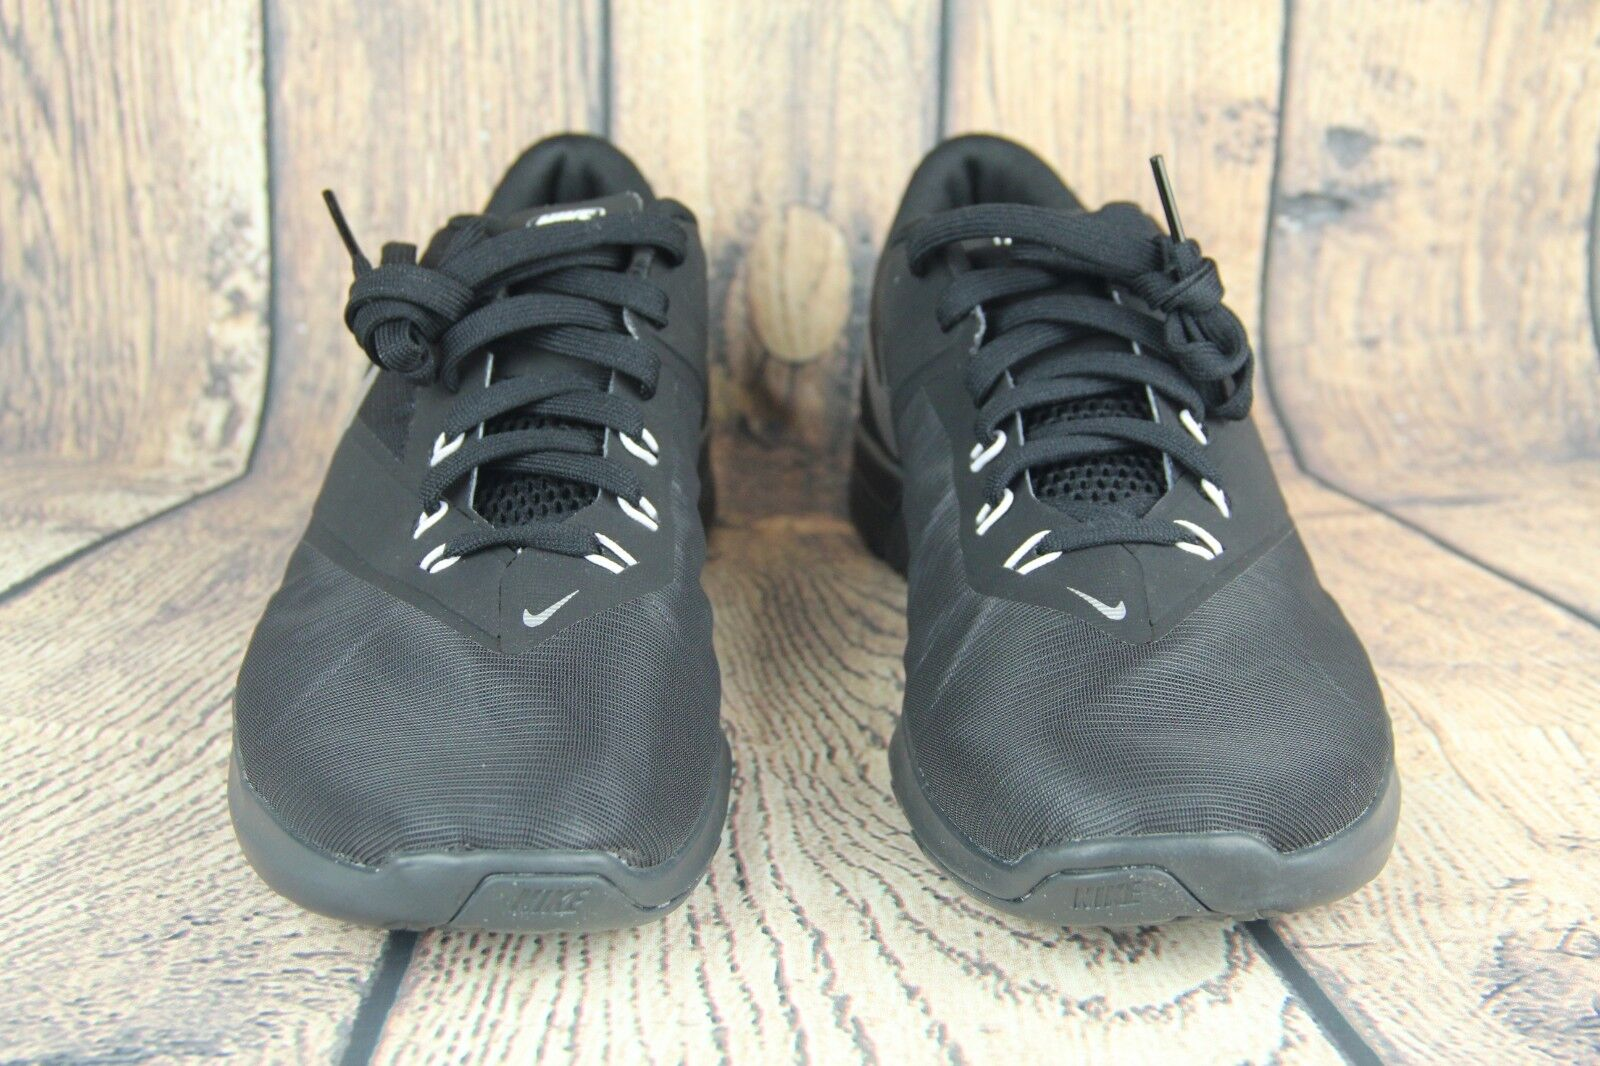 Mens Nike FS Lite Lite Lite Trainer 4 Training shoes Black Anthracite Silver 844794 001 SZ c50046